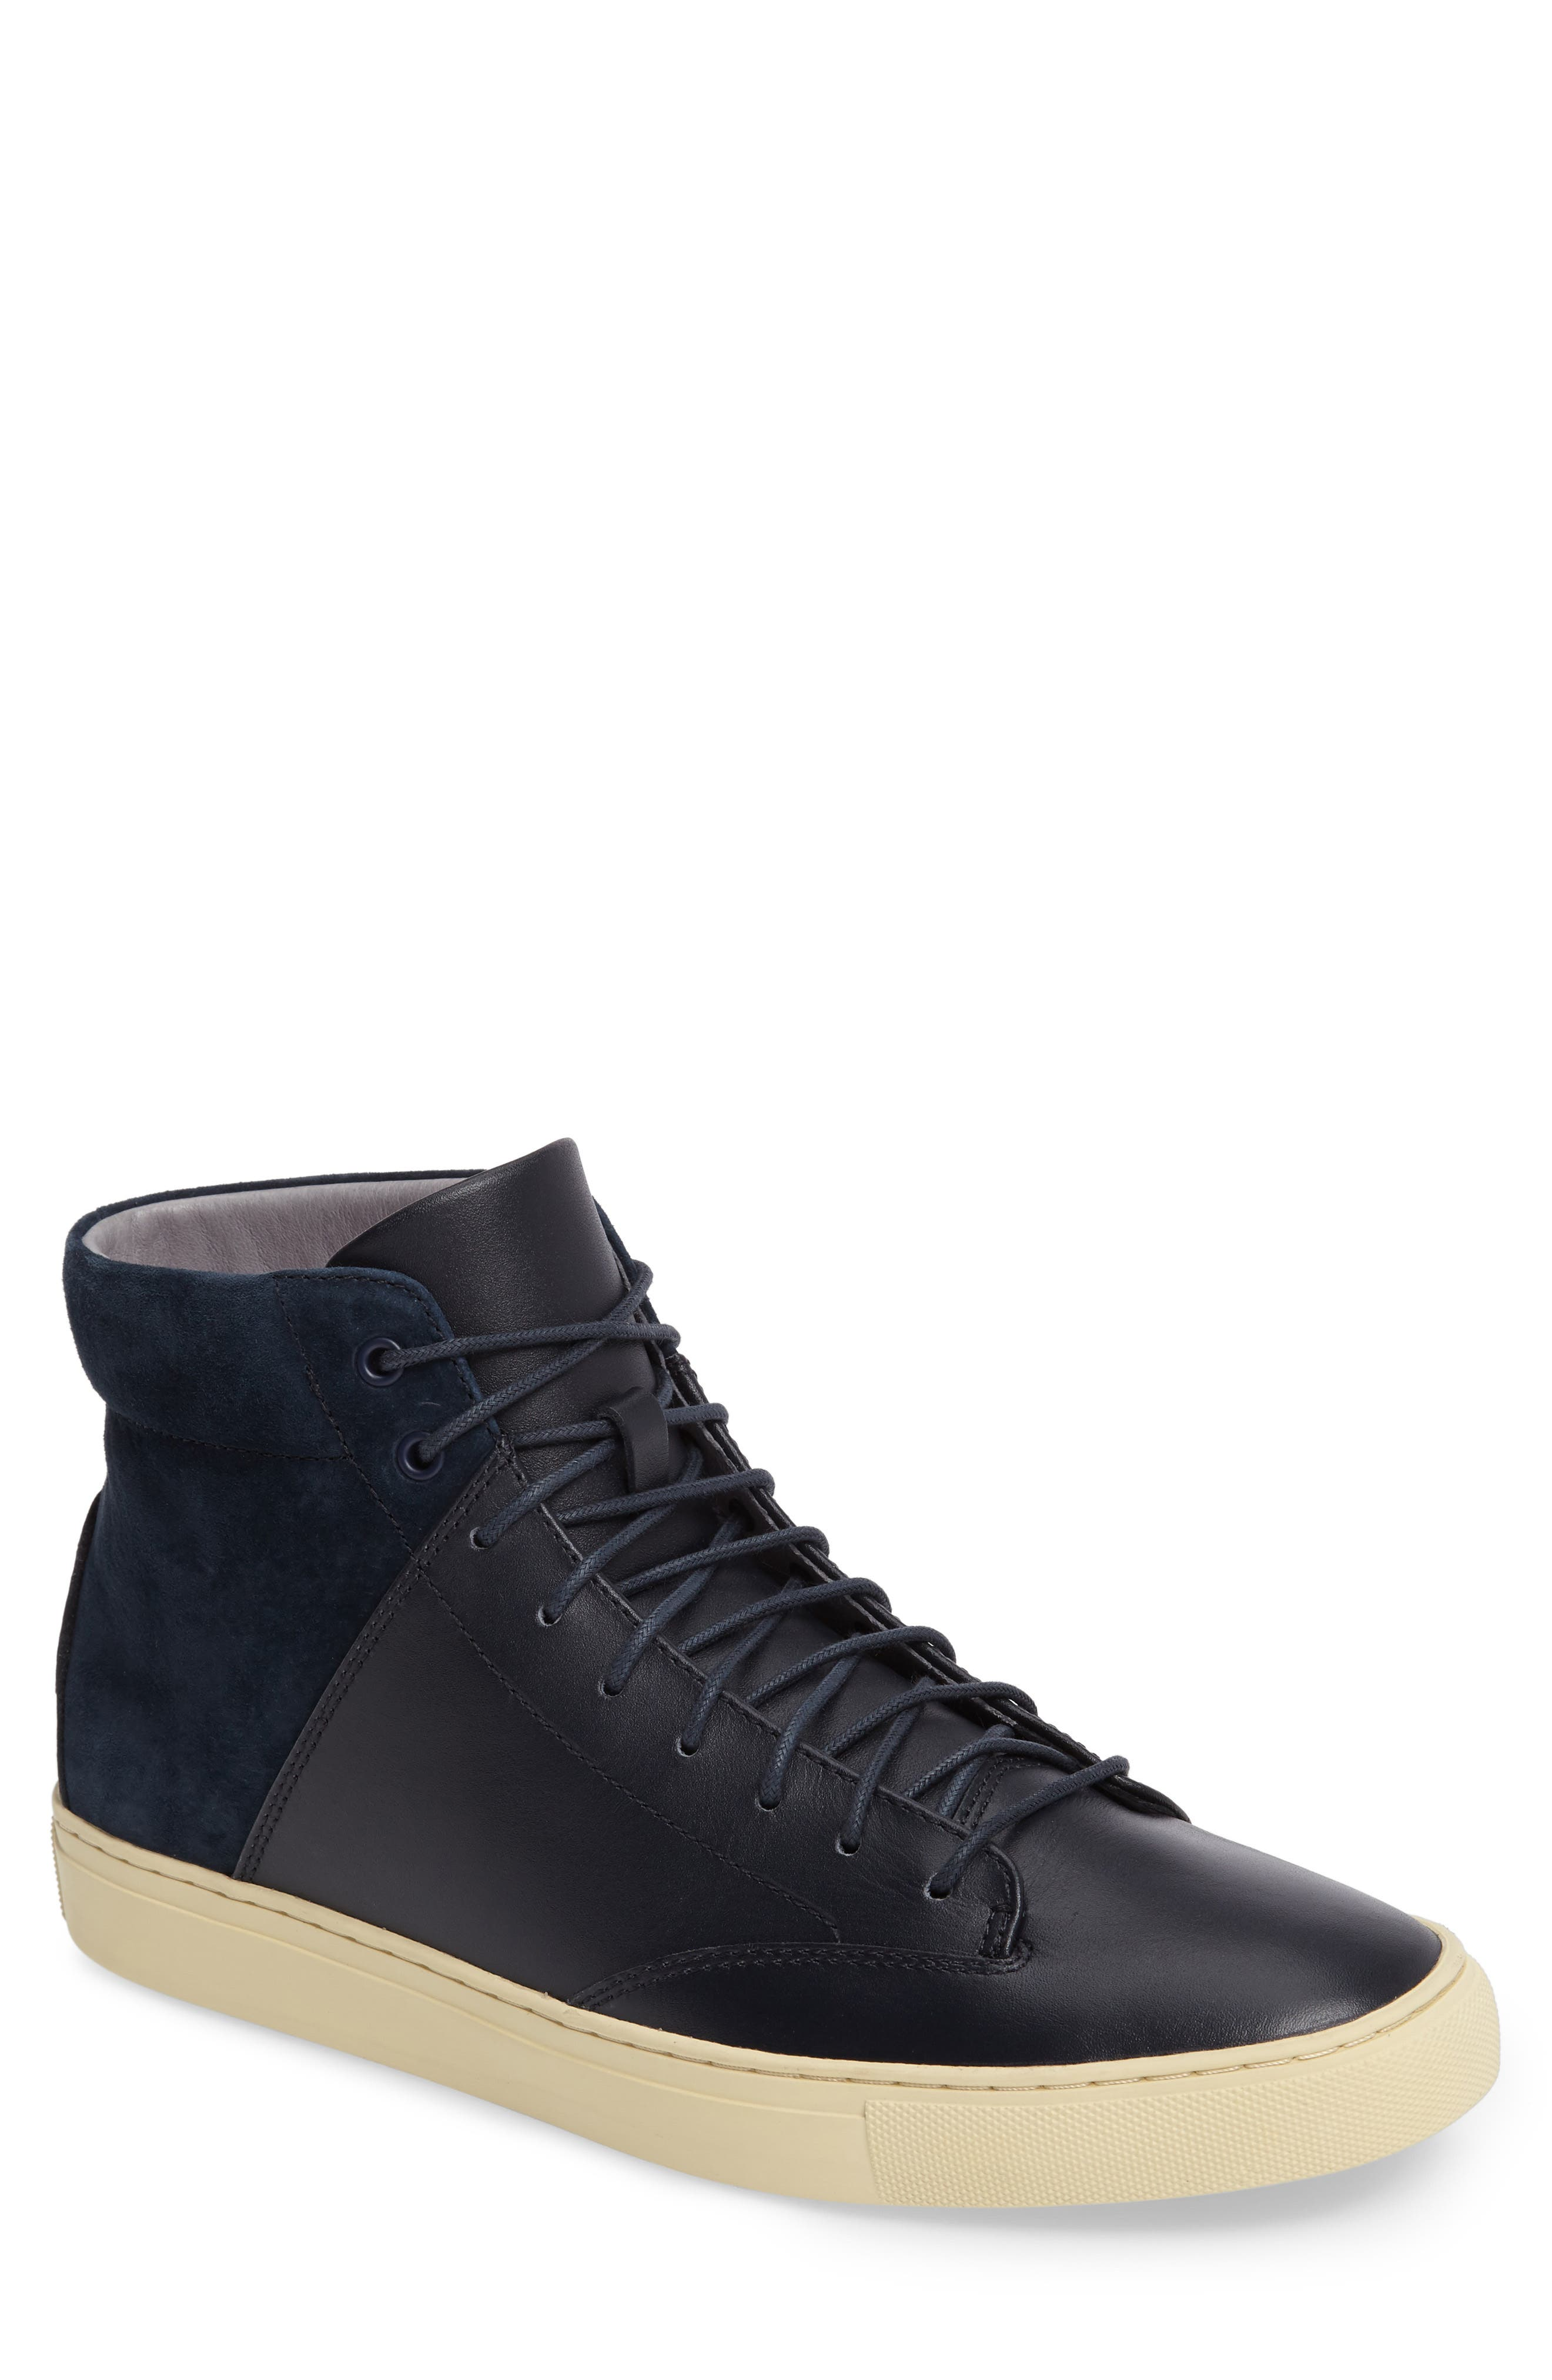 TCG 'Porter' High Top Sneaker (Men)